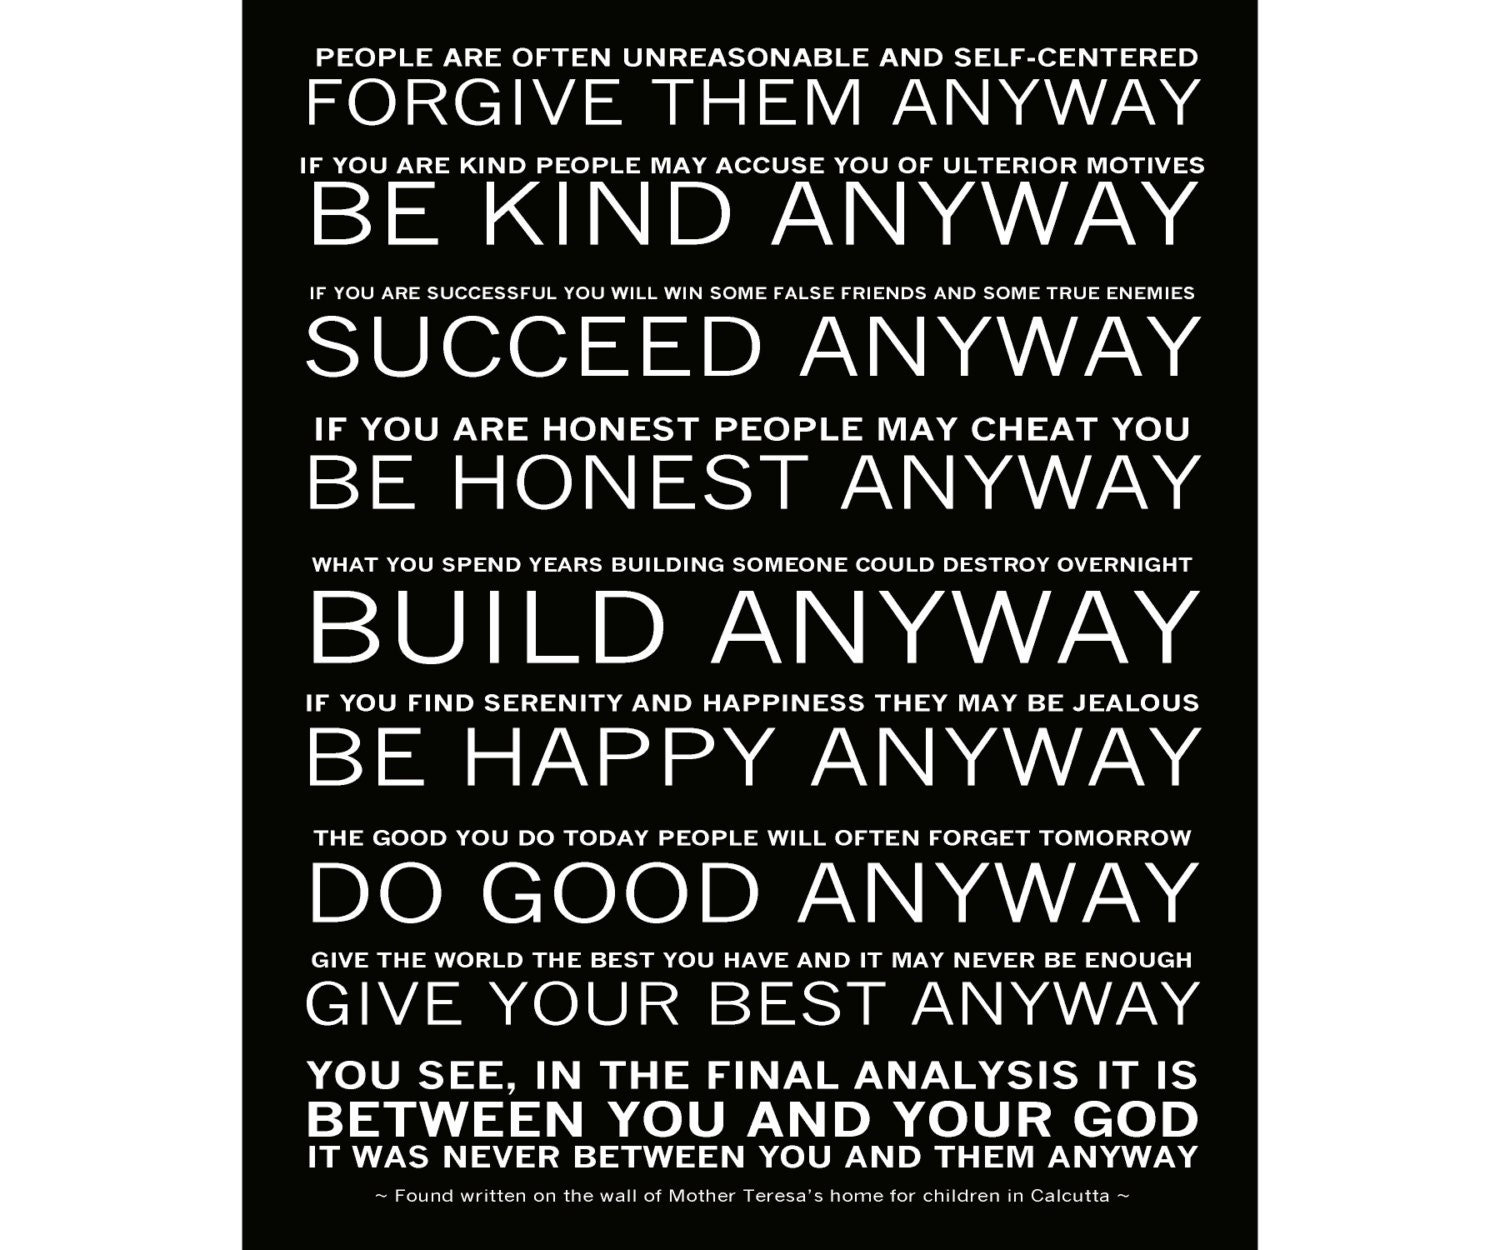 Mother Teresa Quotes Love Them Anyway Mother Teresa's Do It Anyway Poem Ready To Hang Canvas